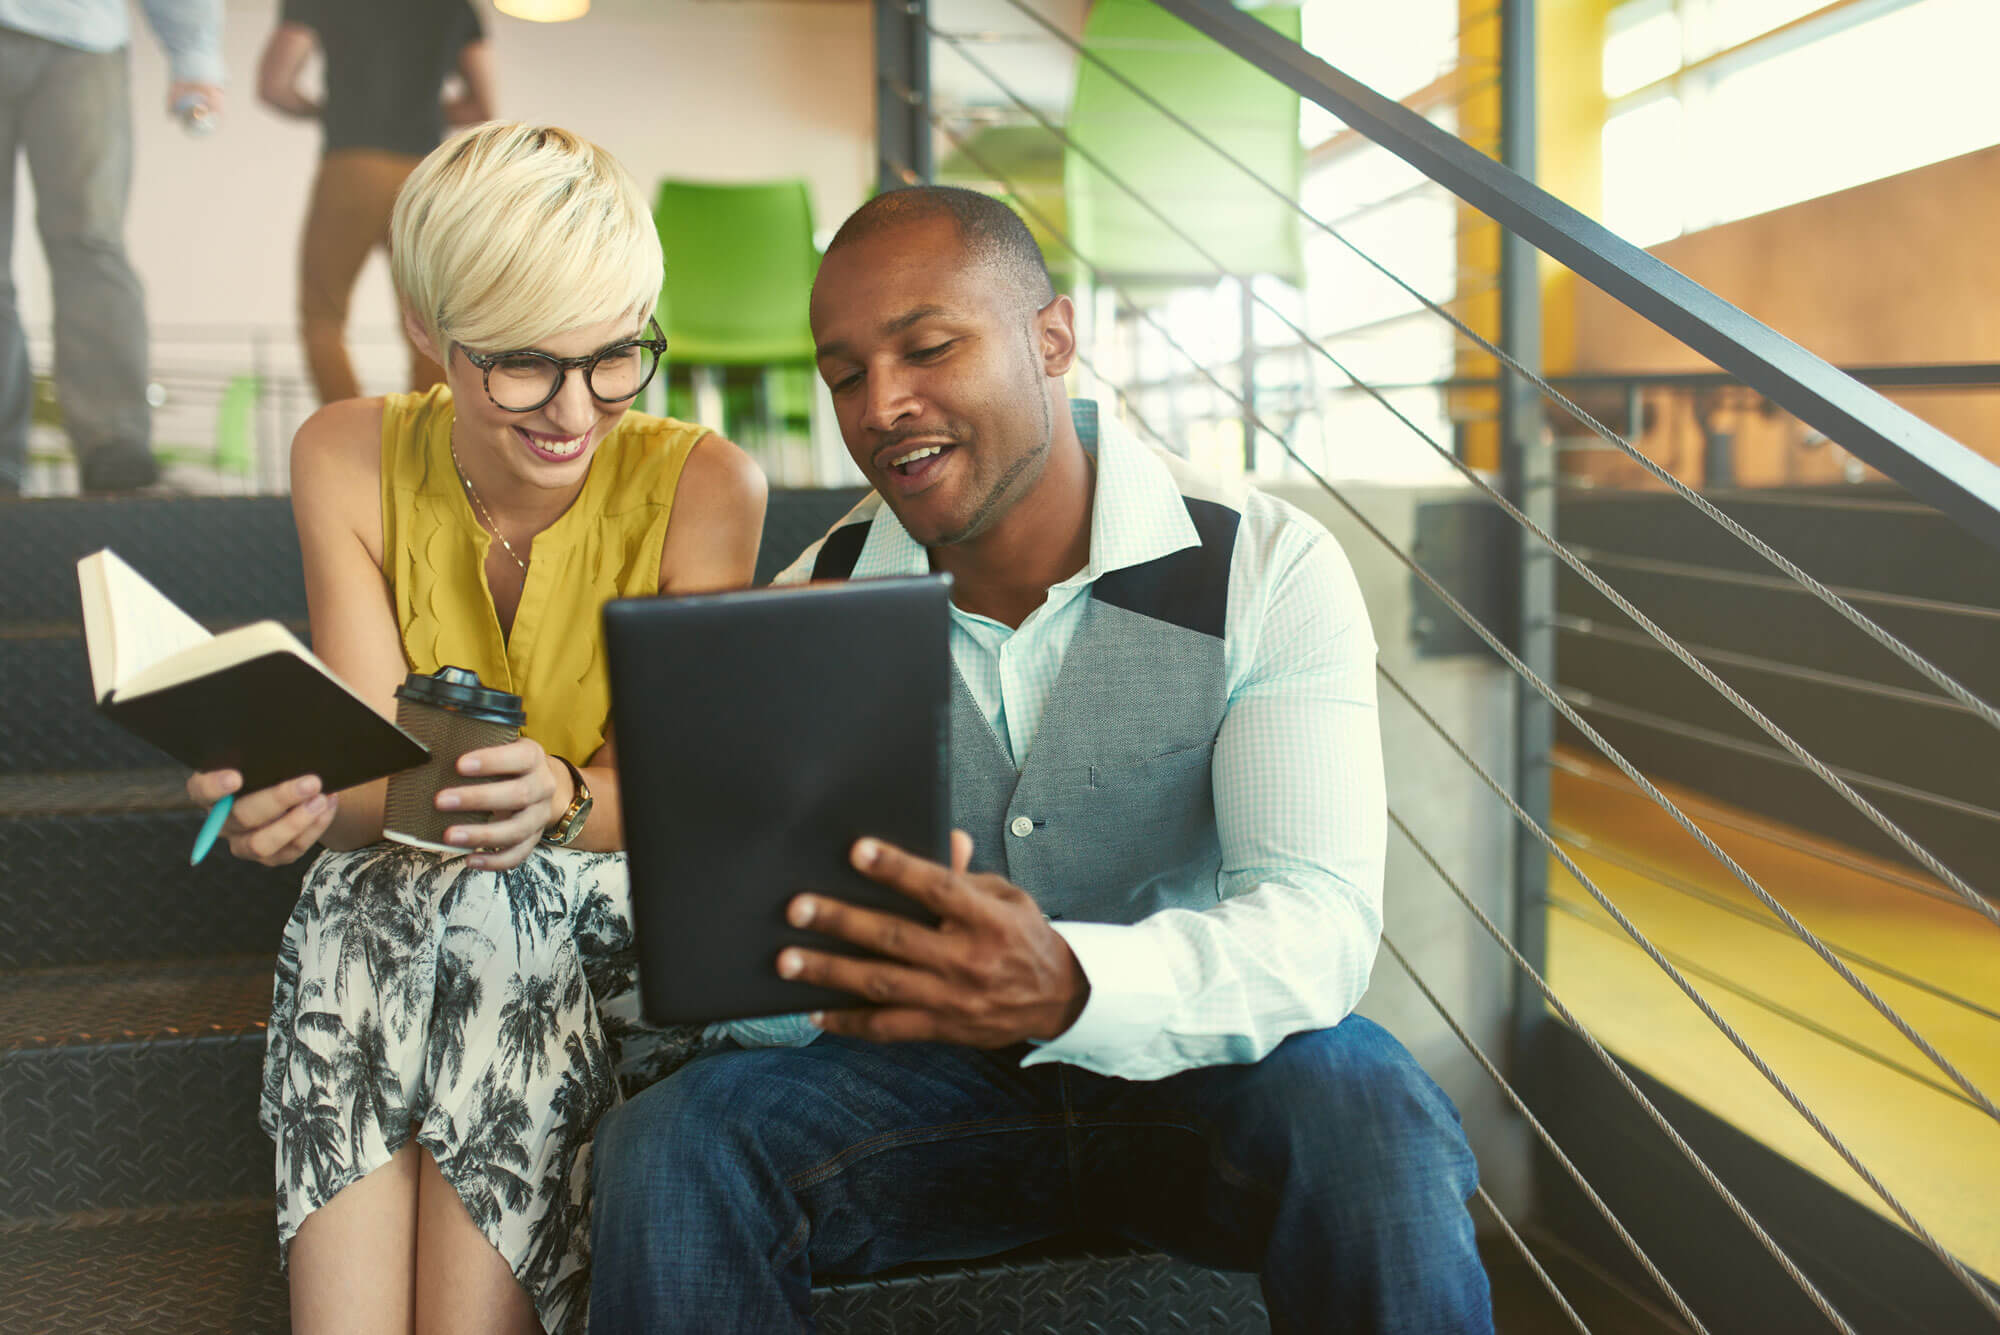 Photo of Two People sitting on a Staircase looking at a Tablet